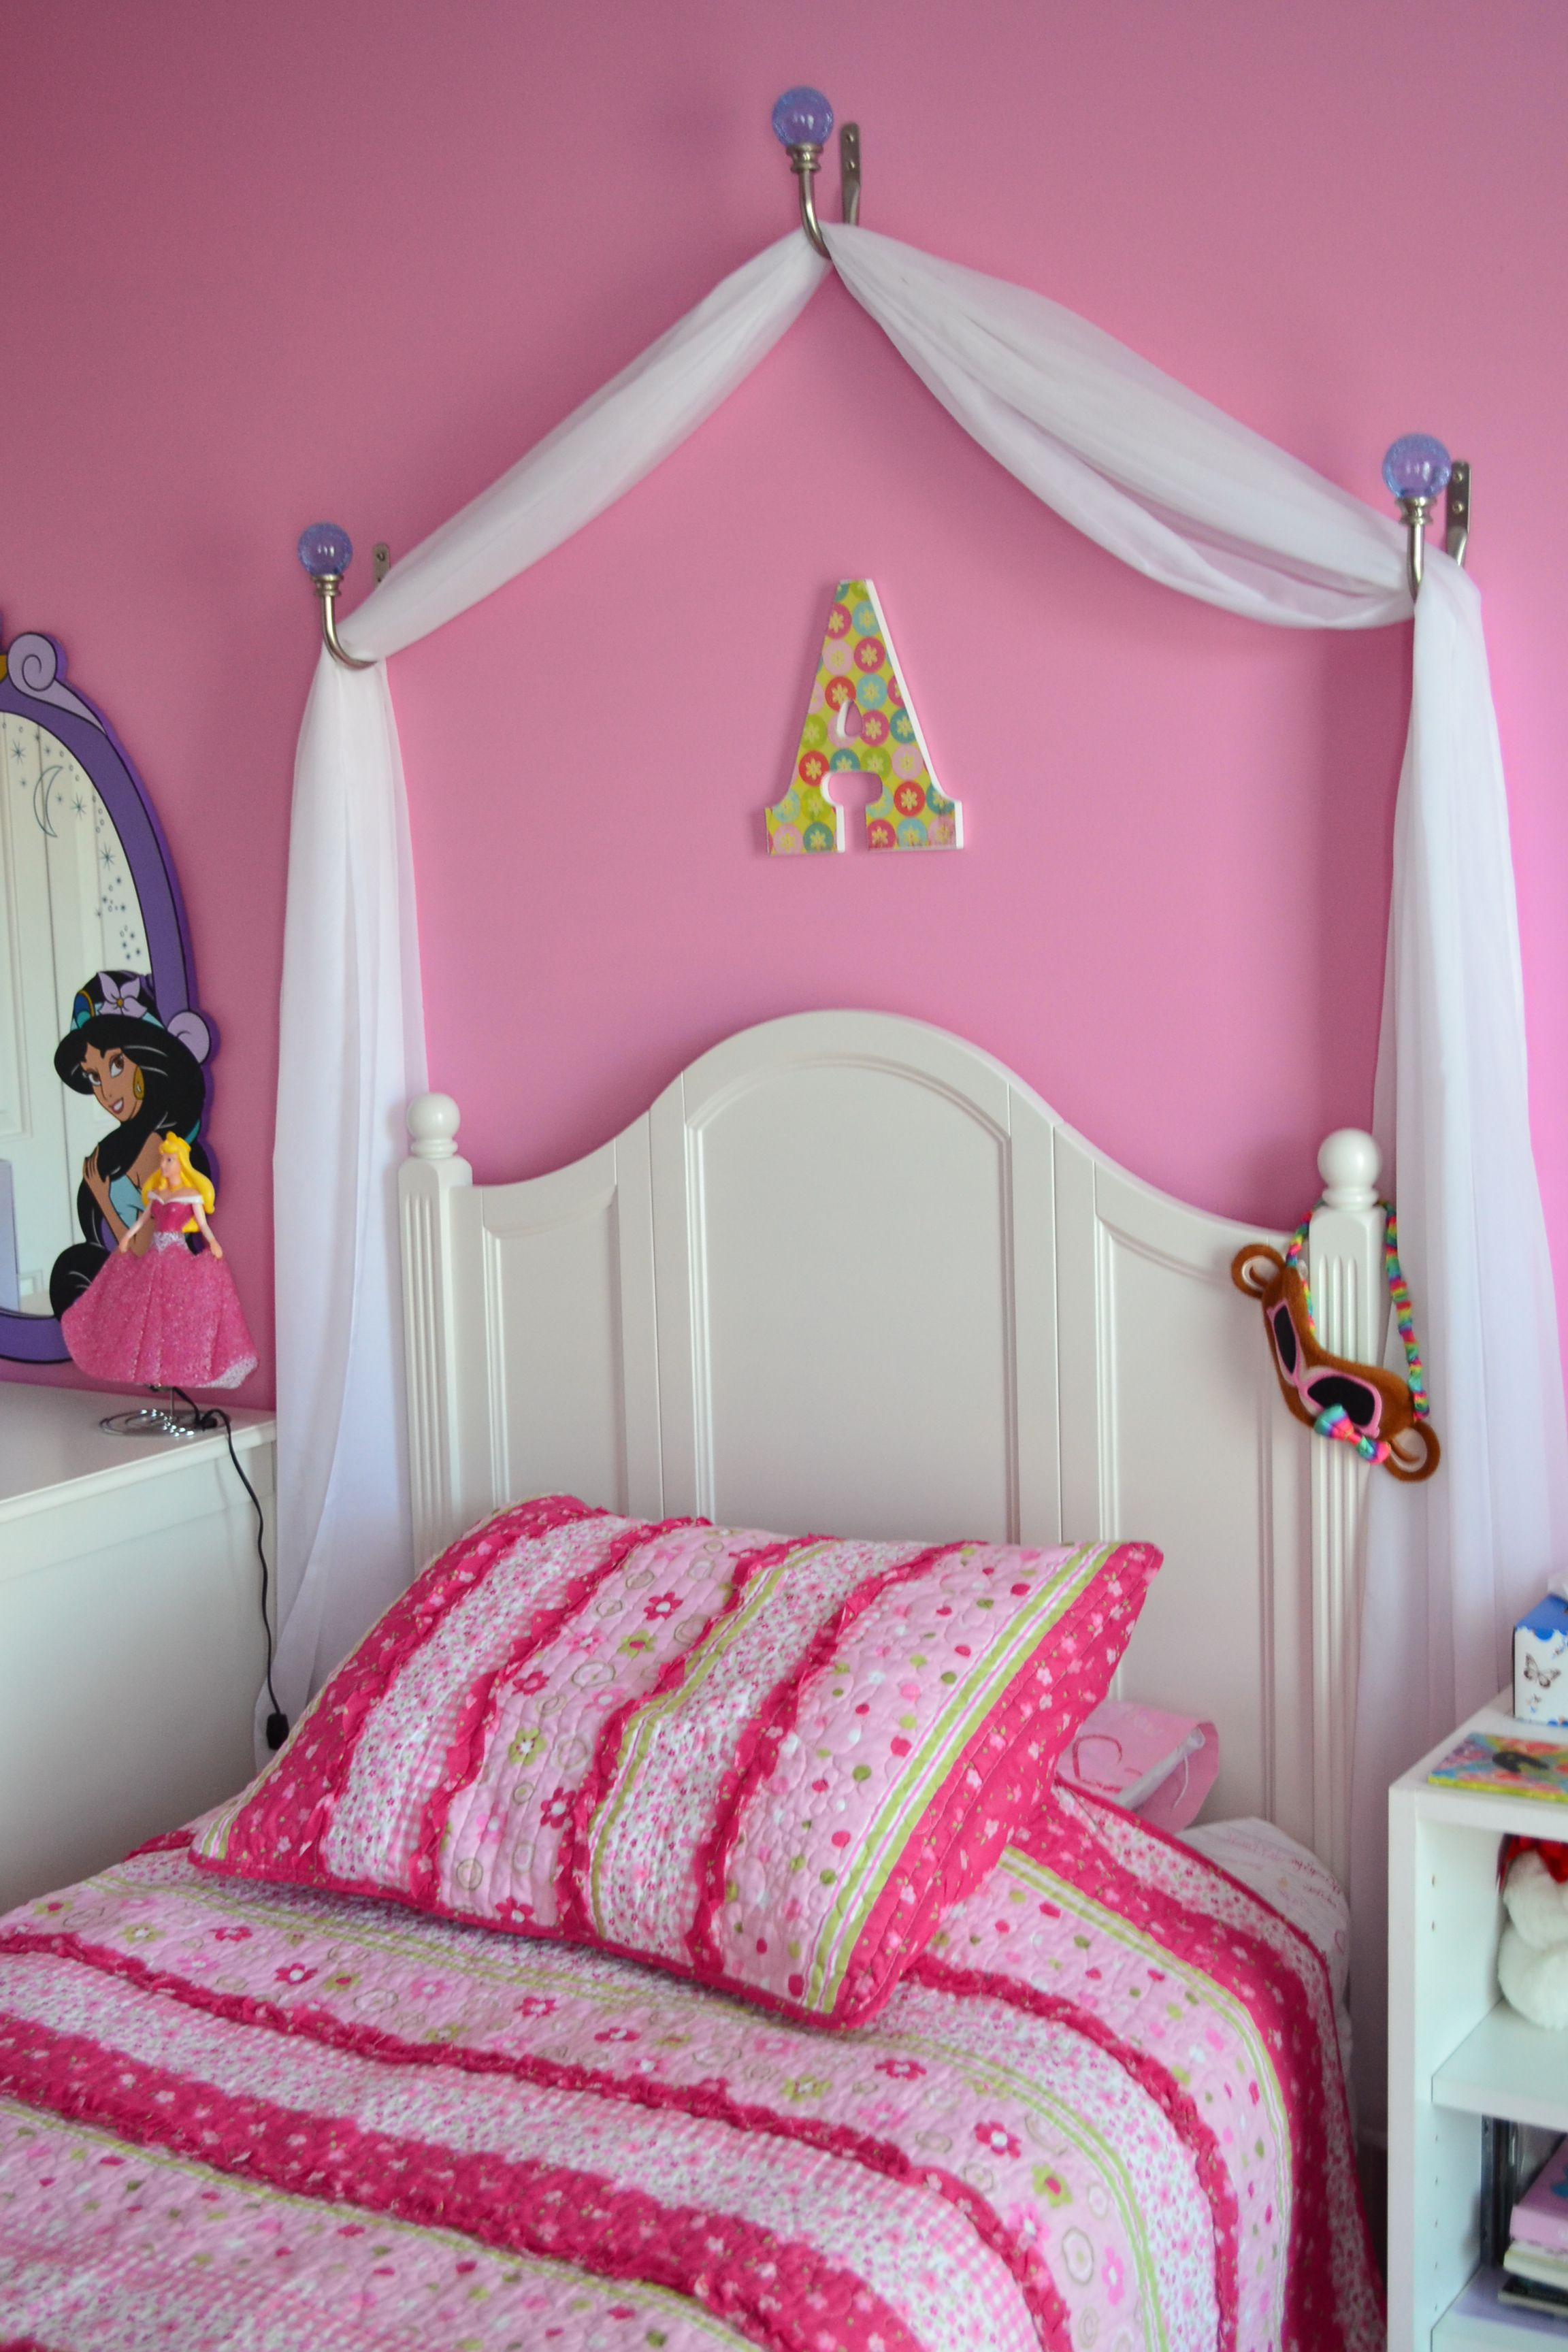 creating a disney princess room on a budget | homemade canopy